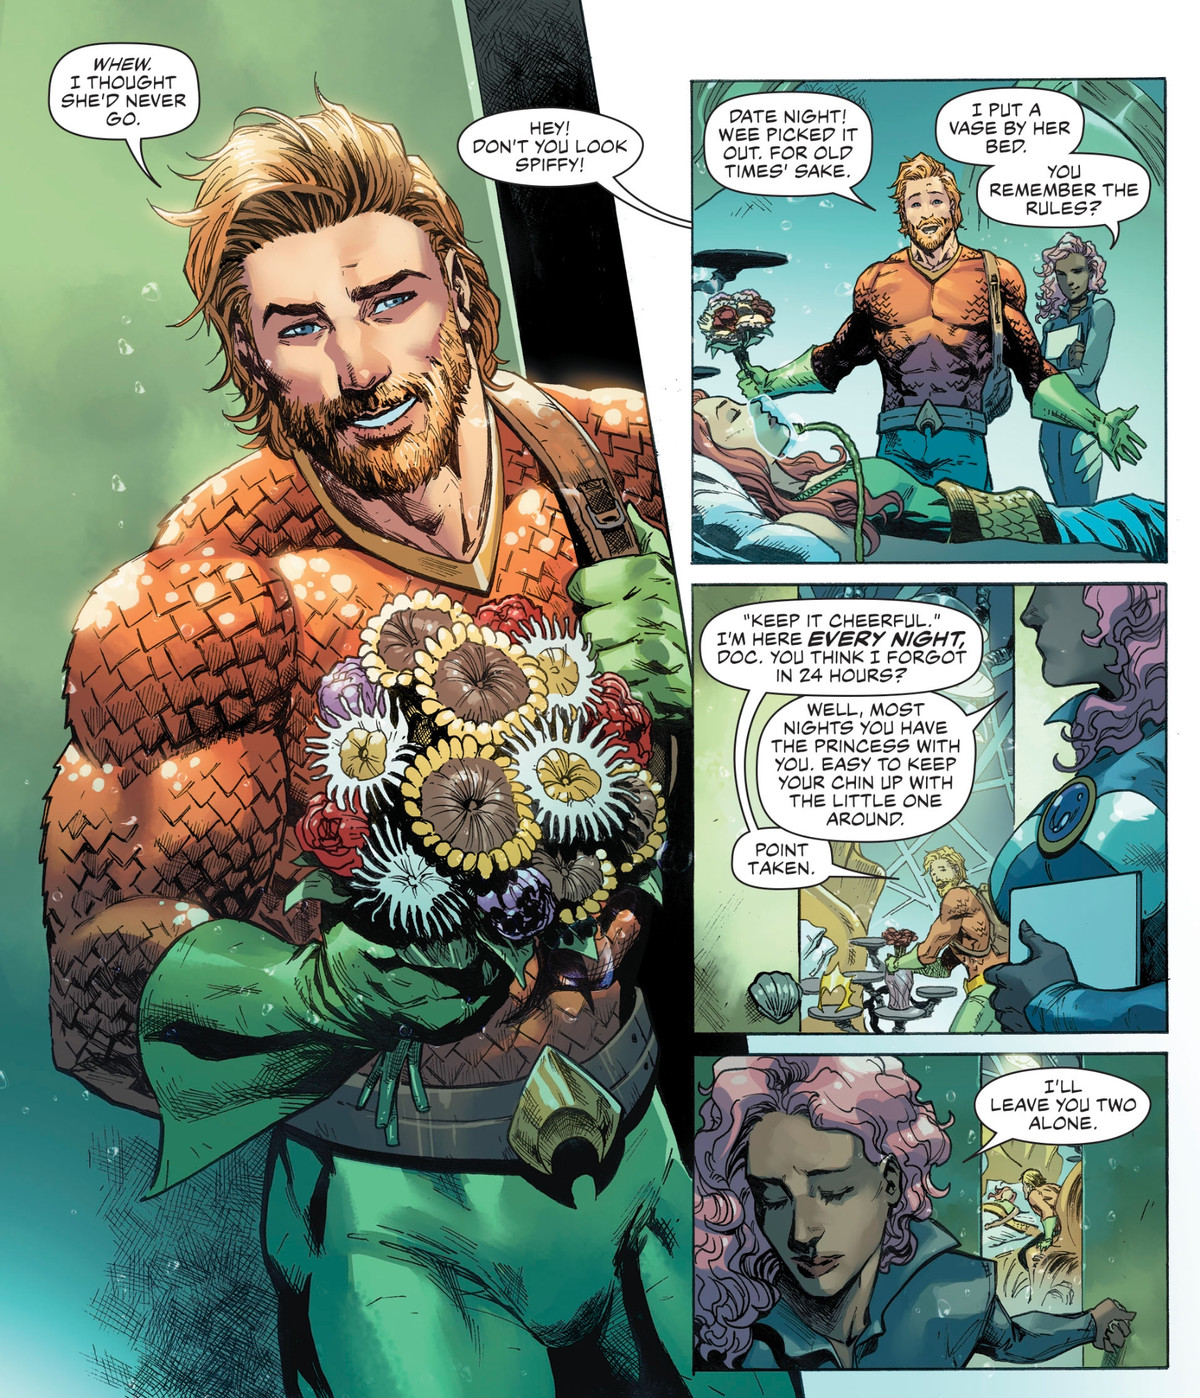 """Aquaman arrives at Mera's bedside with a new haircut and a bouquet of sea anemones for their """"date night,"""" in Aquaman #TK, DC Comics (2020)."""